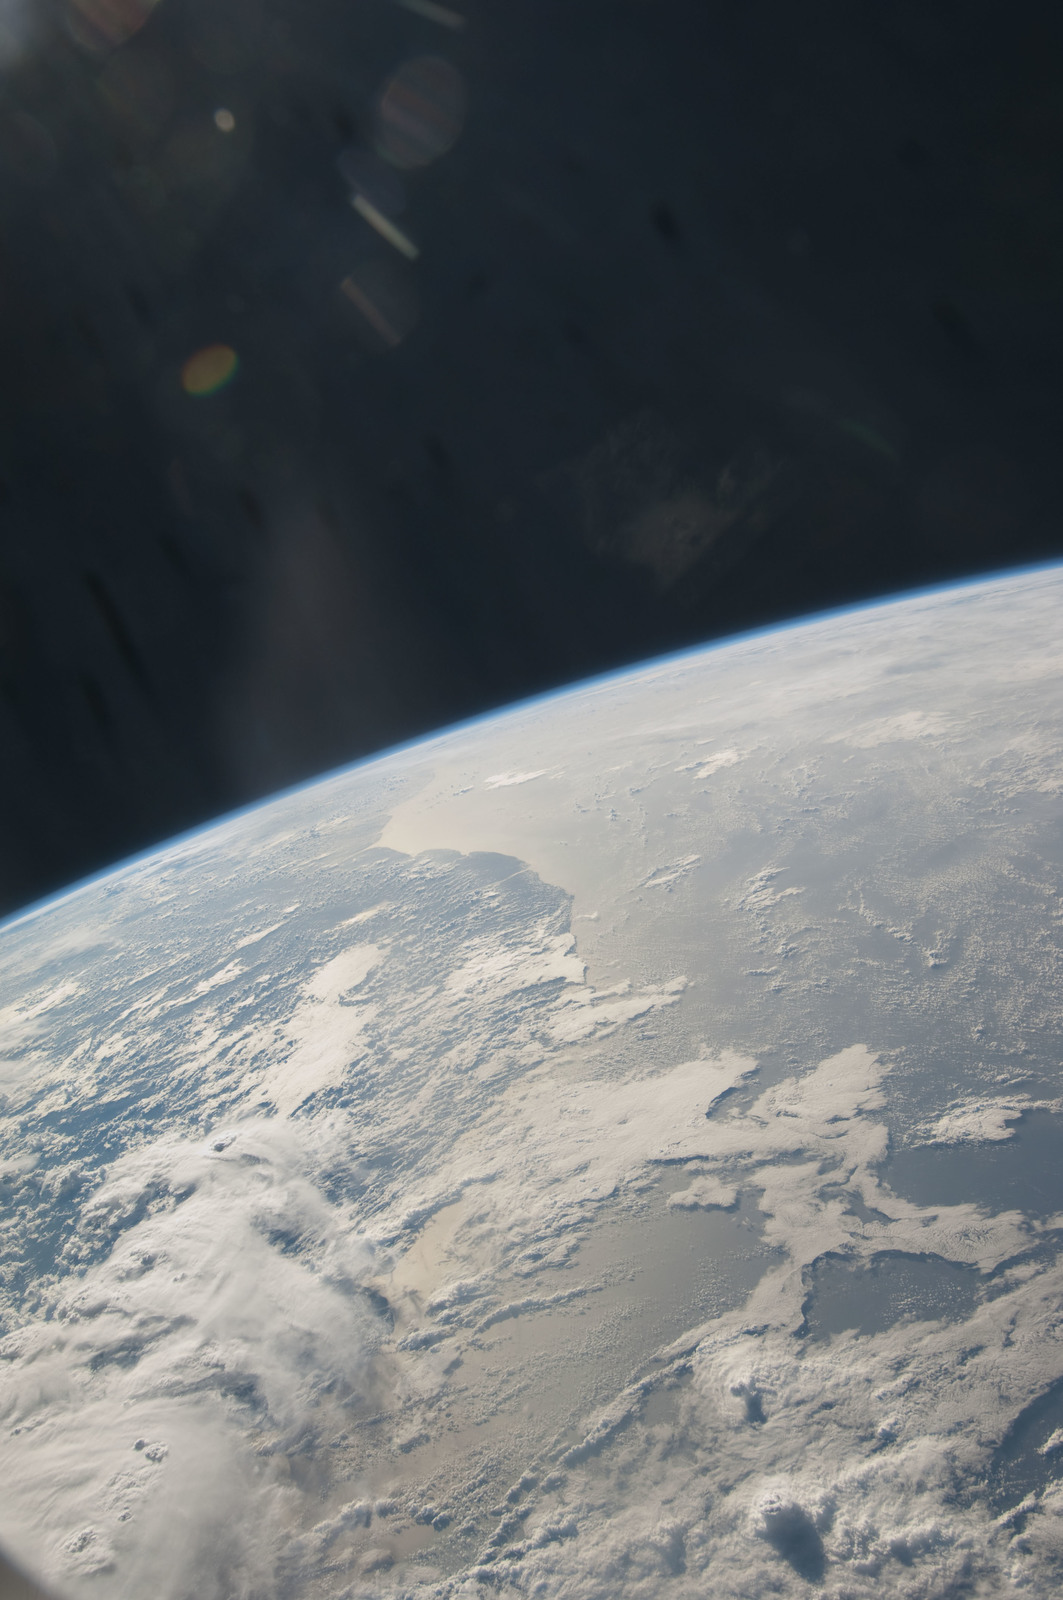 S125E008017 - STS-125 - Earth Observation taken by the STS-125 Crew